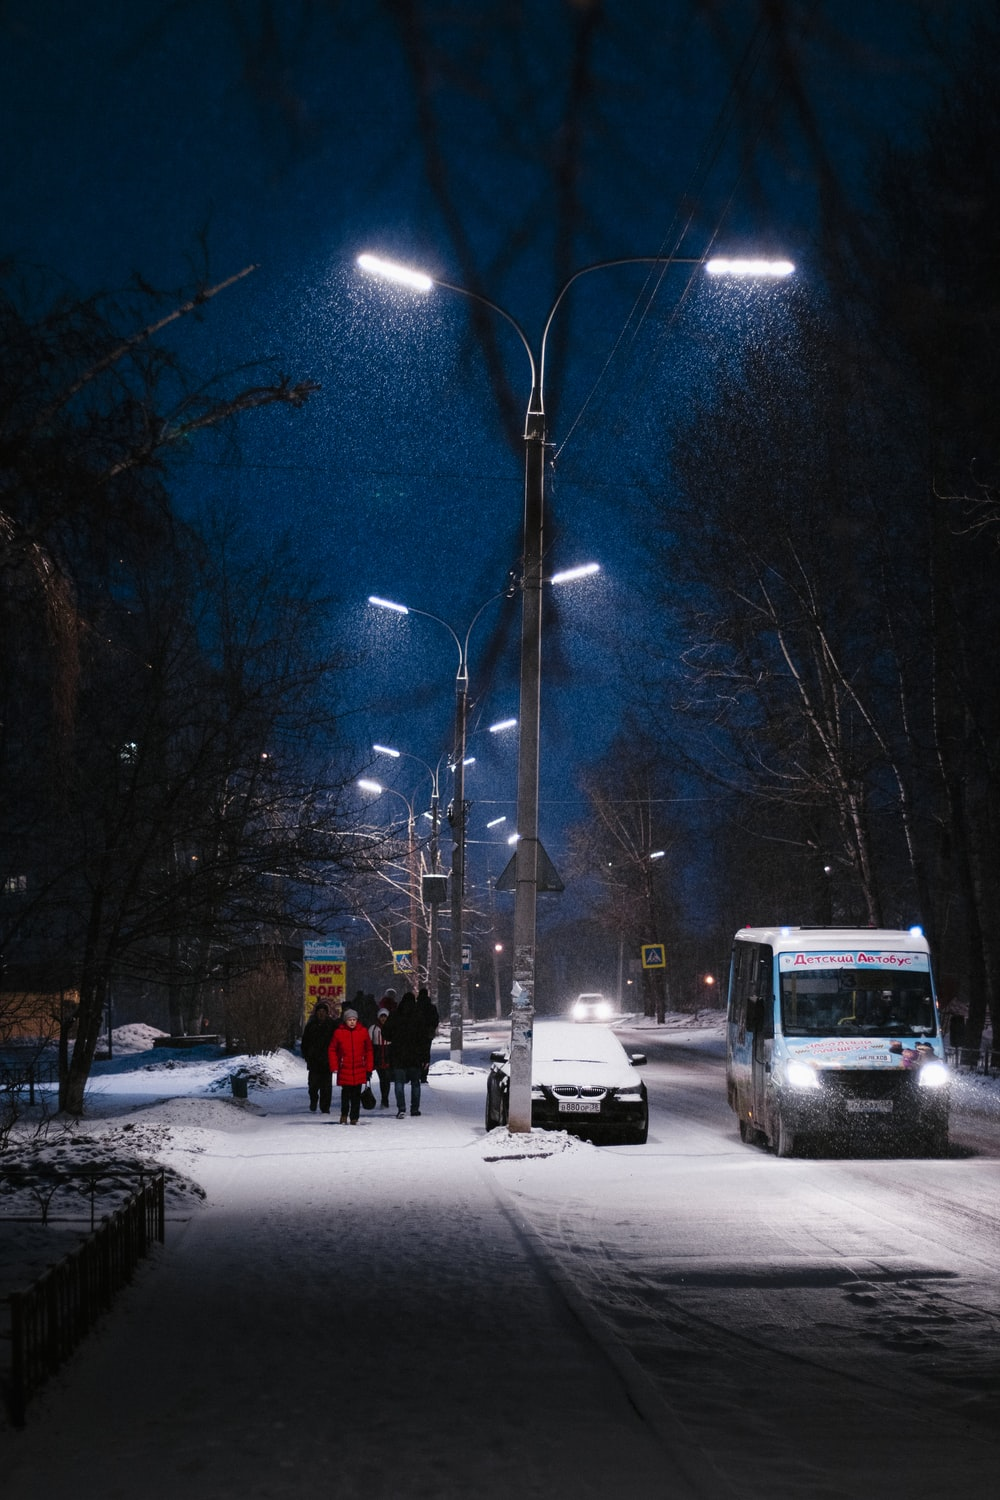 people walking on snow covered road during night time